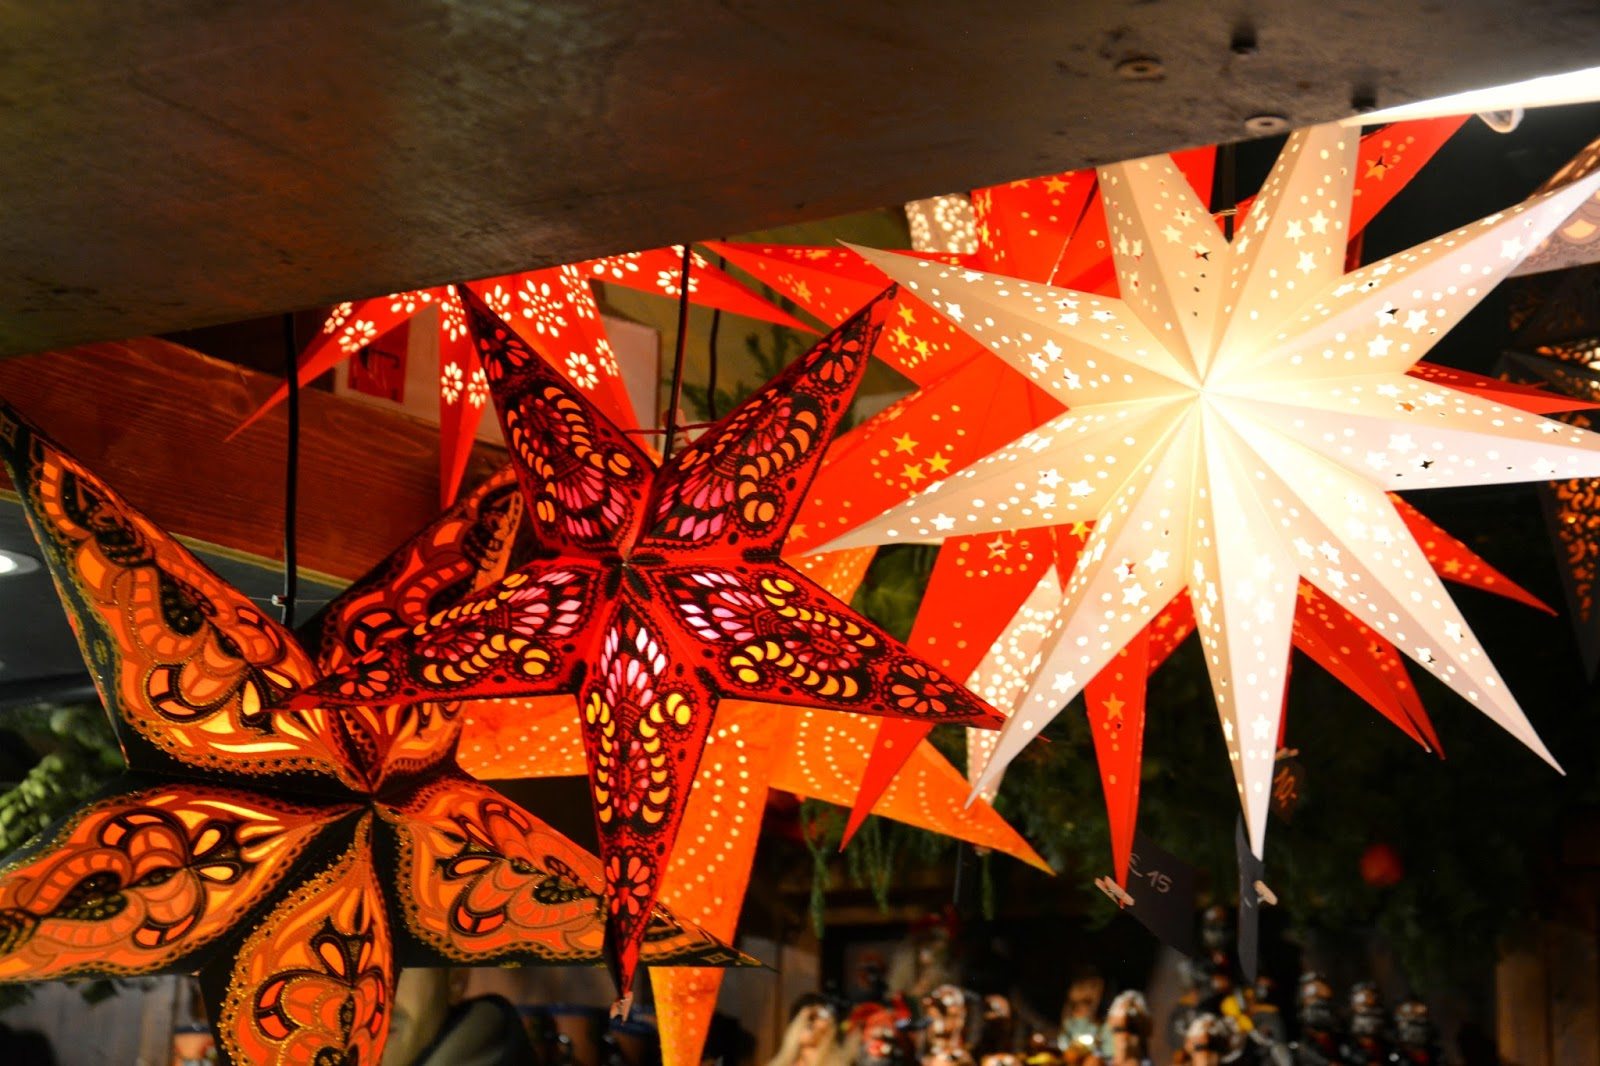 Handmade star lights on display